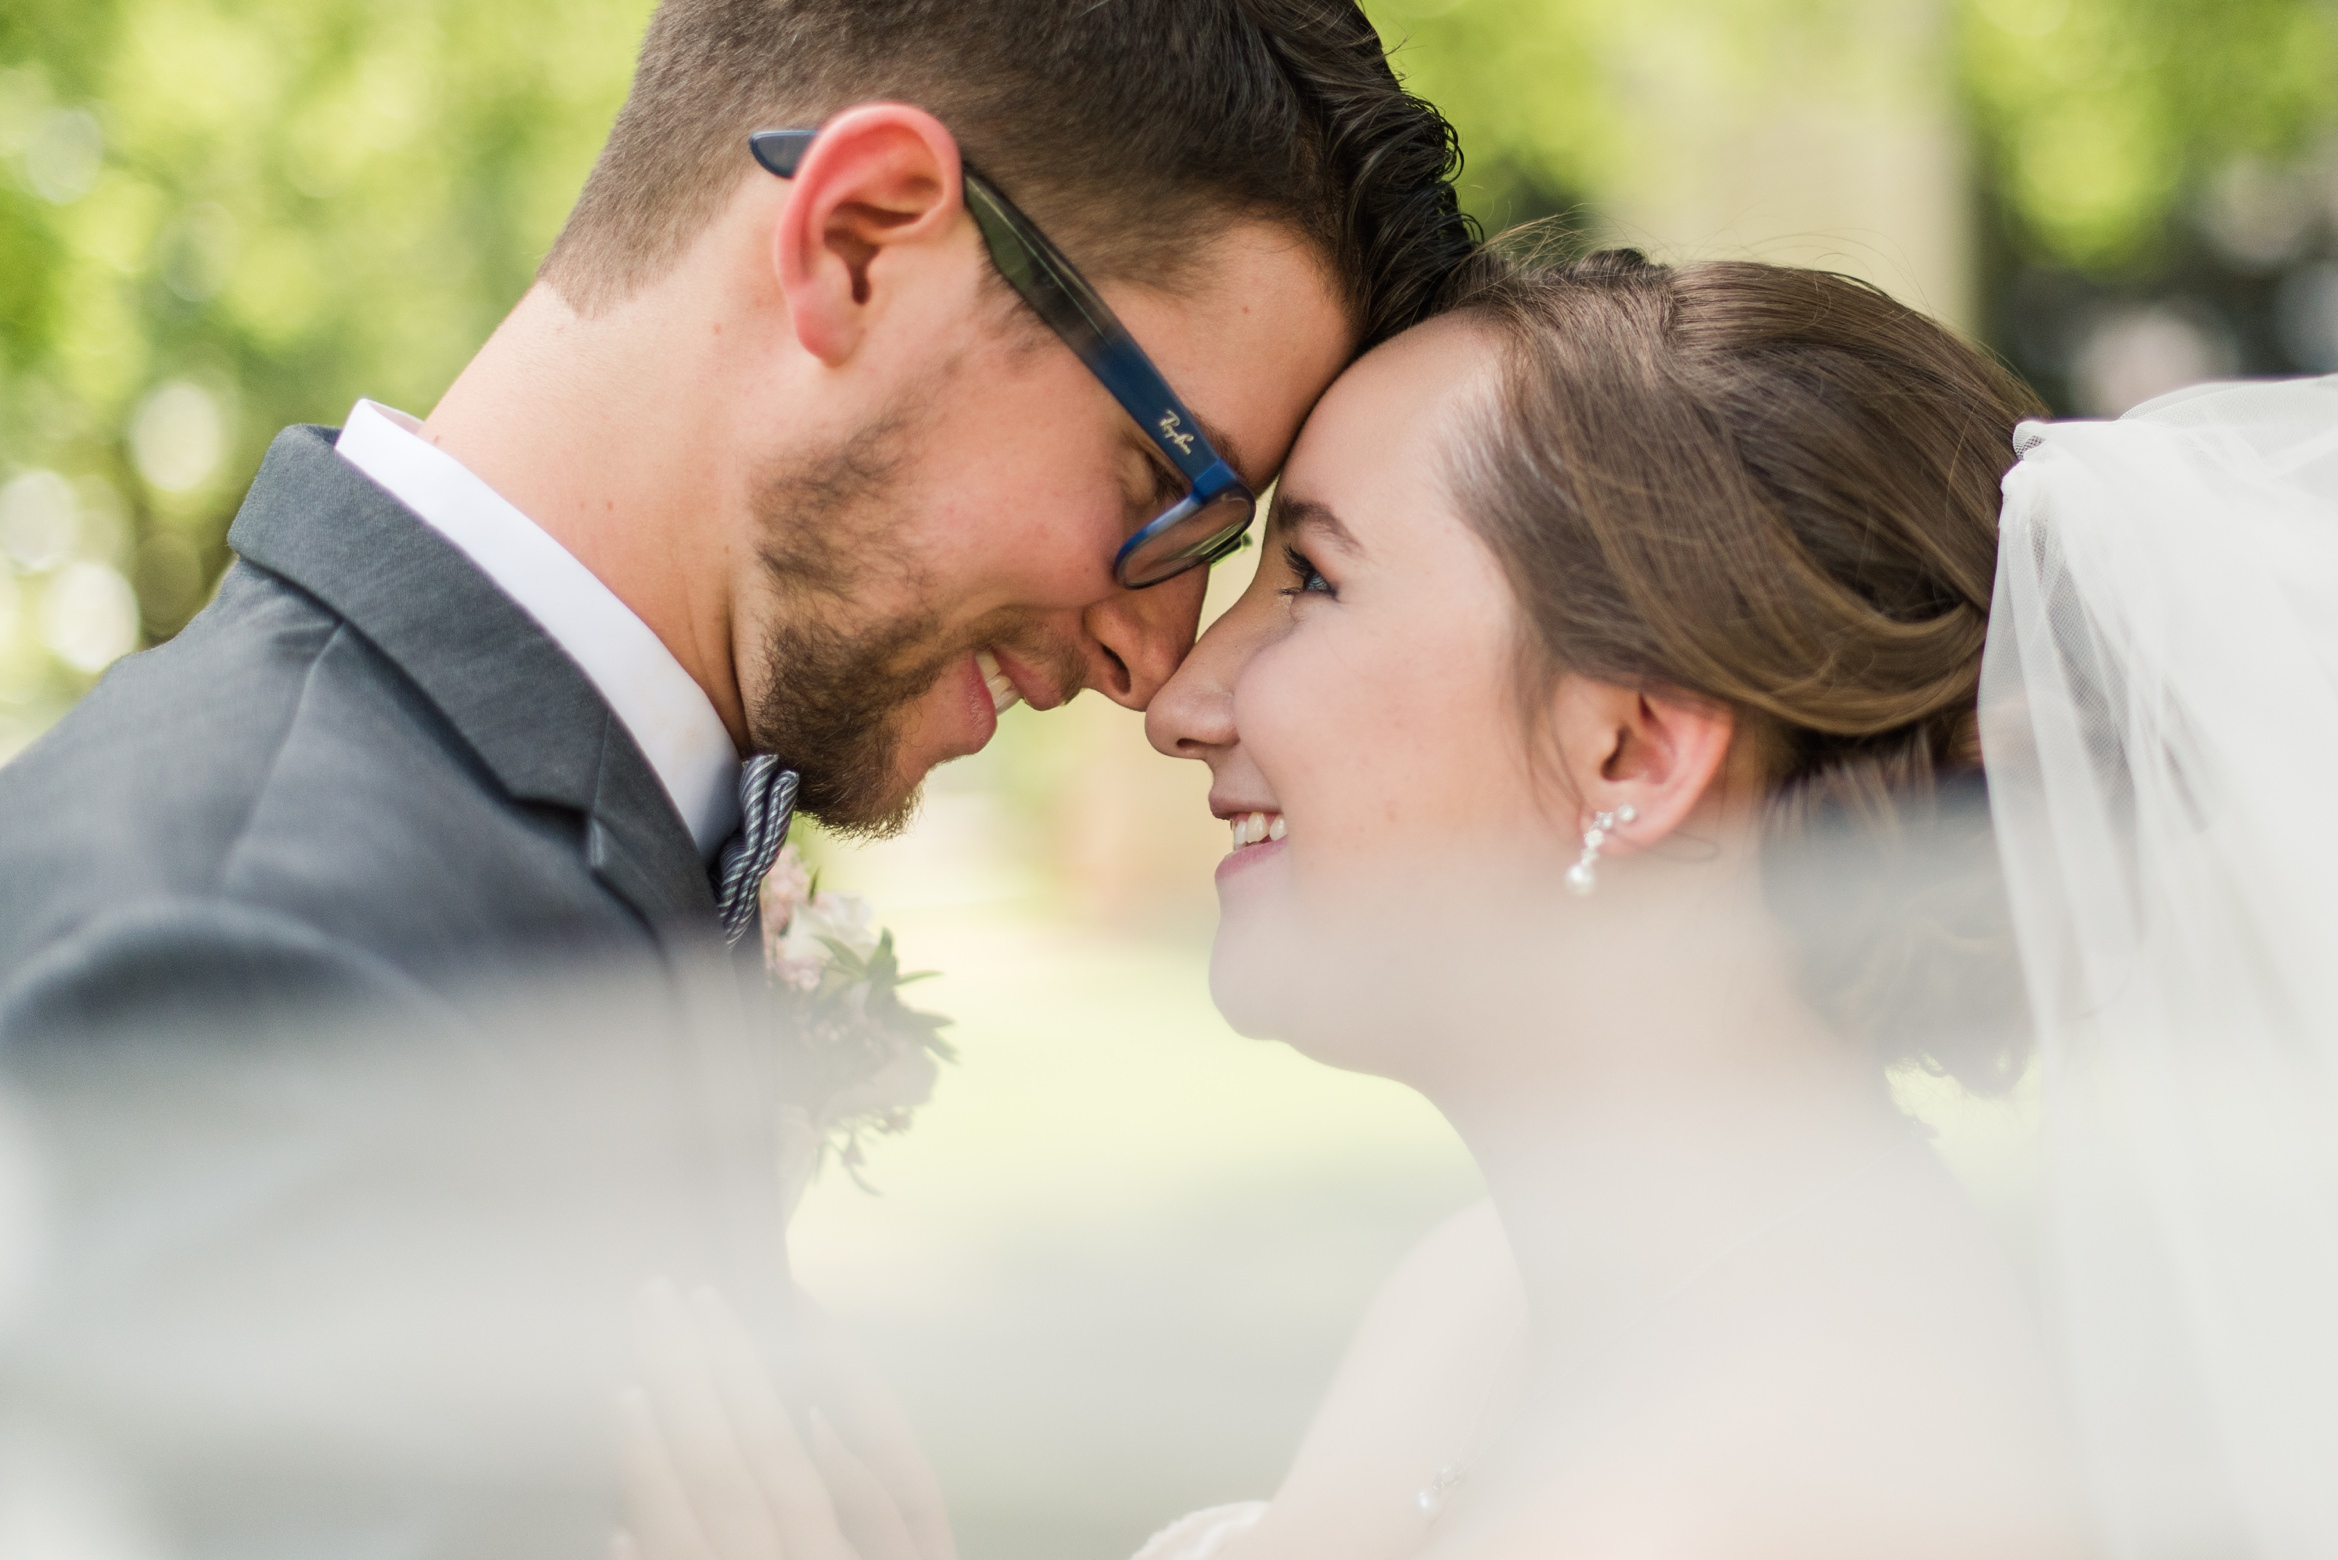 Carter + KayLynn Wedding in Siloam Springs, AR